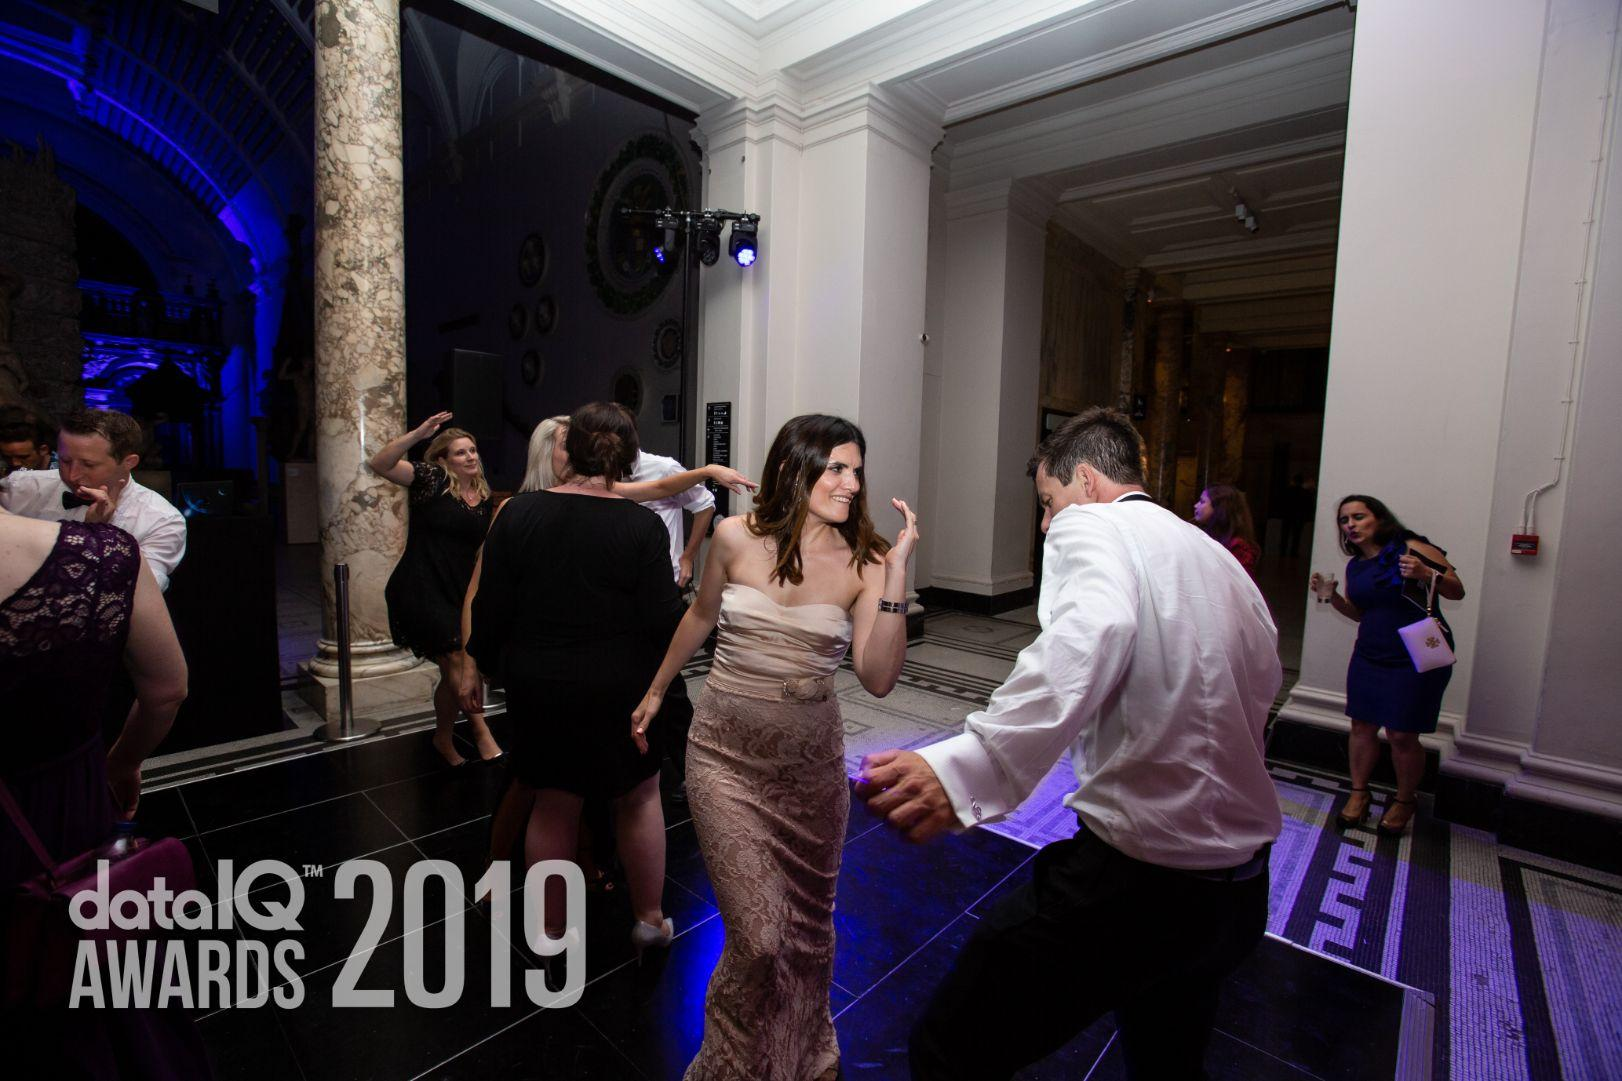 Awards 2019 Image 24